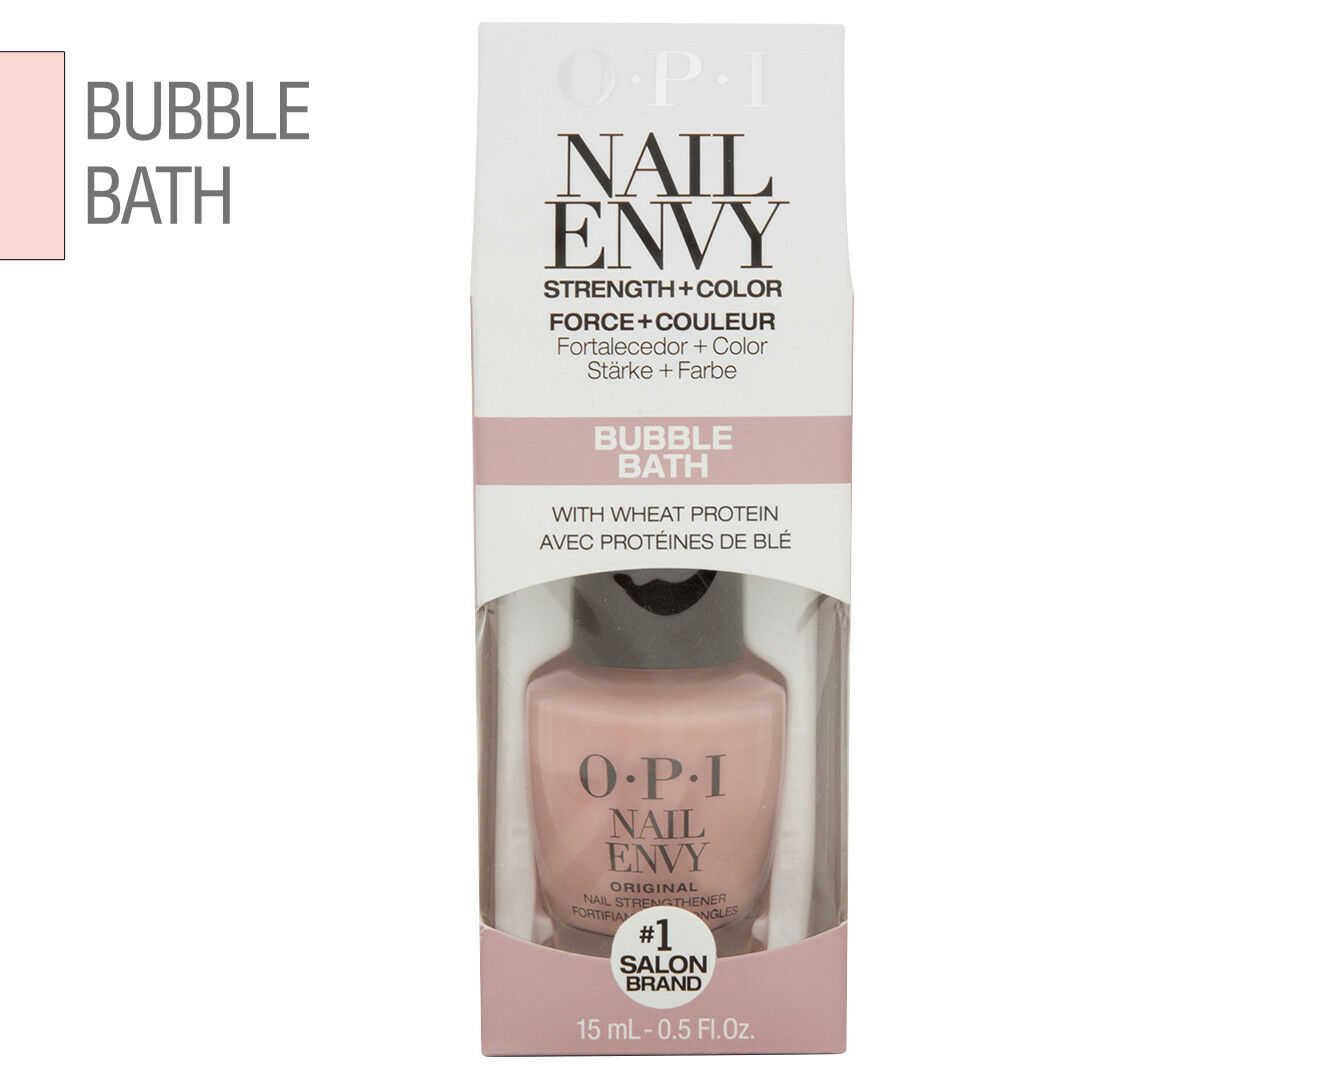 OPI Nail Envy Bubble Bath Nt222 by Myer | eBay